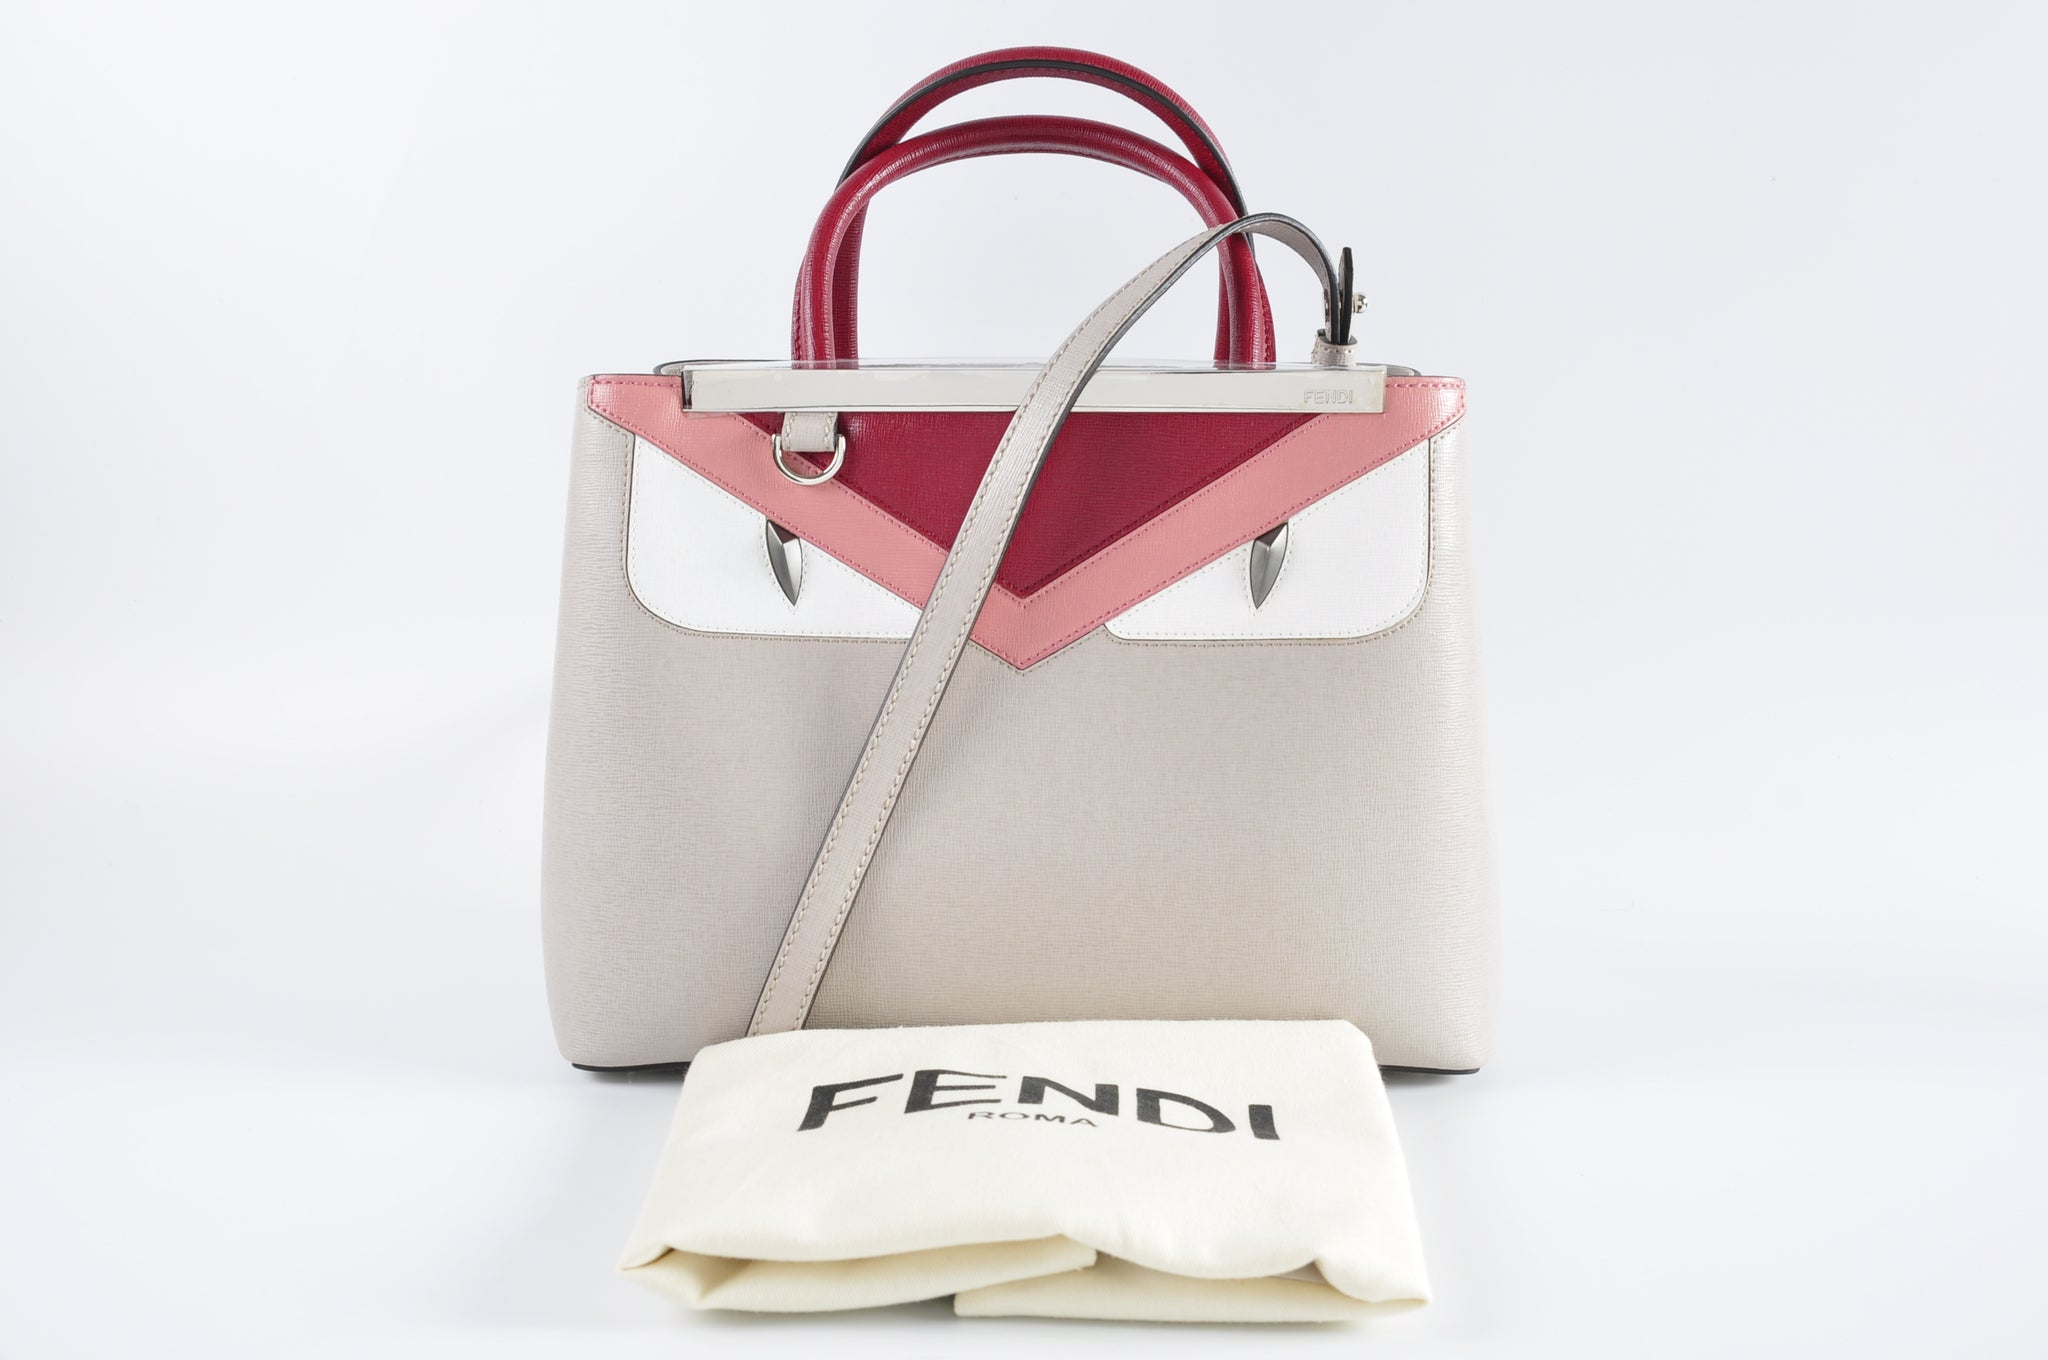 57f006166eaa Fendi Petite 2Jours Monster Tote – Glampot